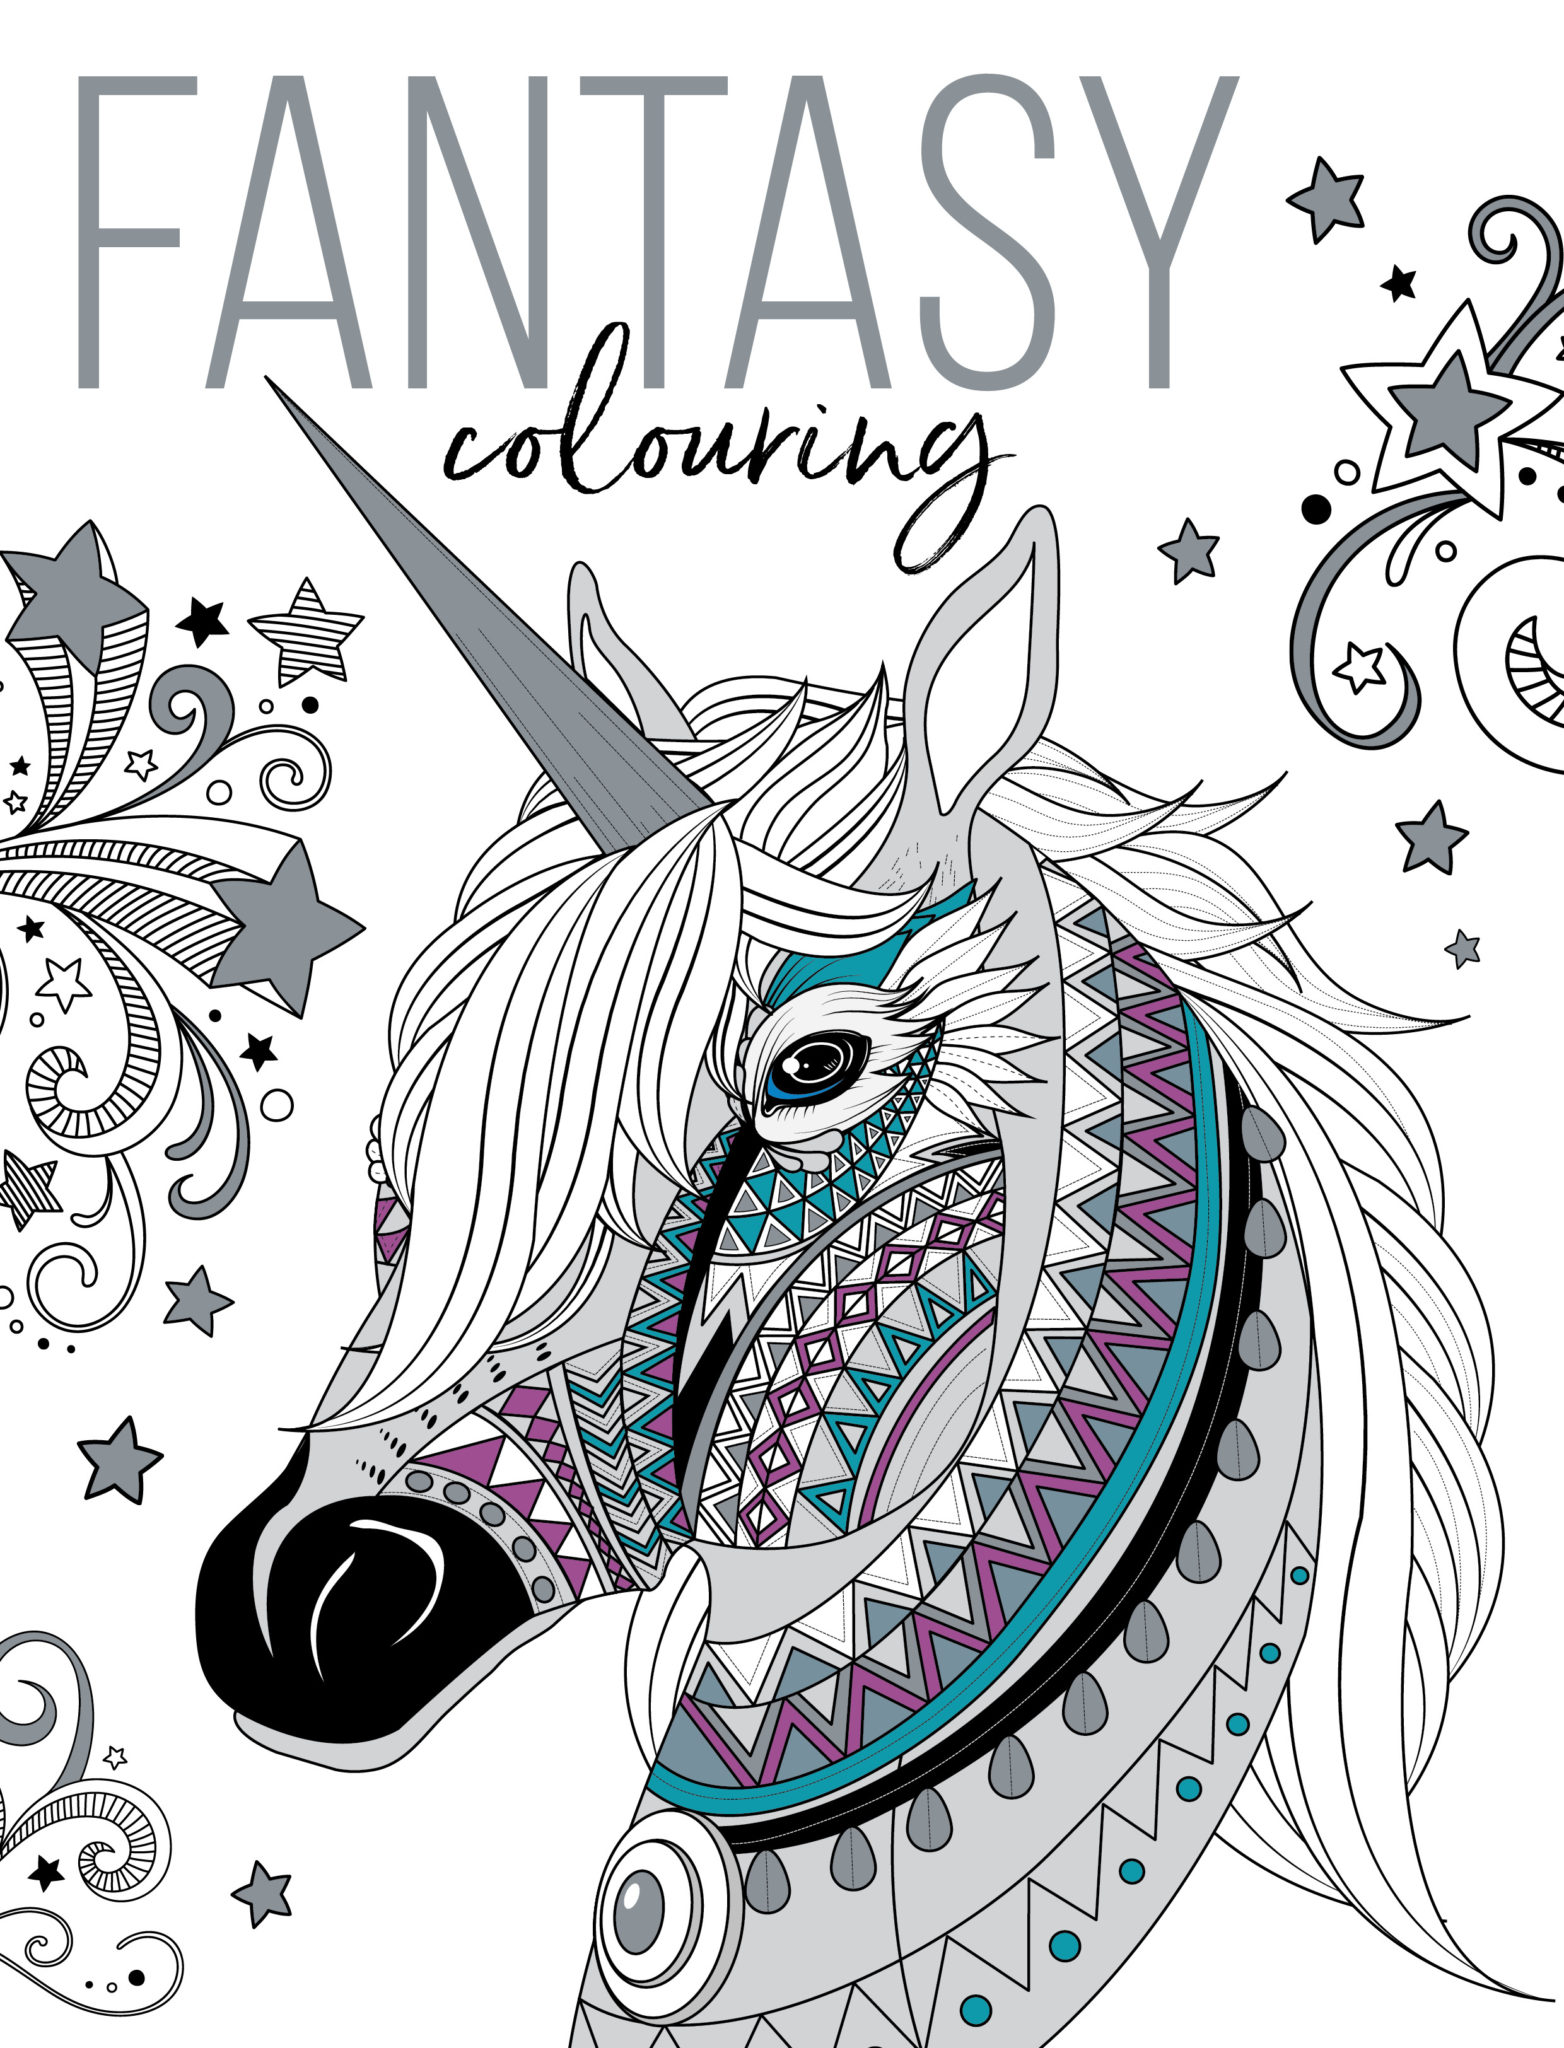 Fantasy Colouring - Buy Now - GMC Publications - Mindfulness